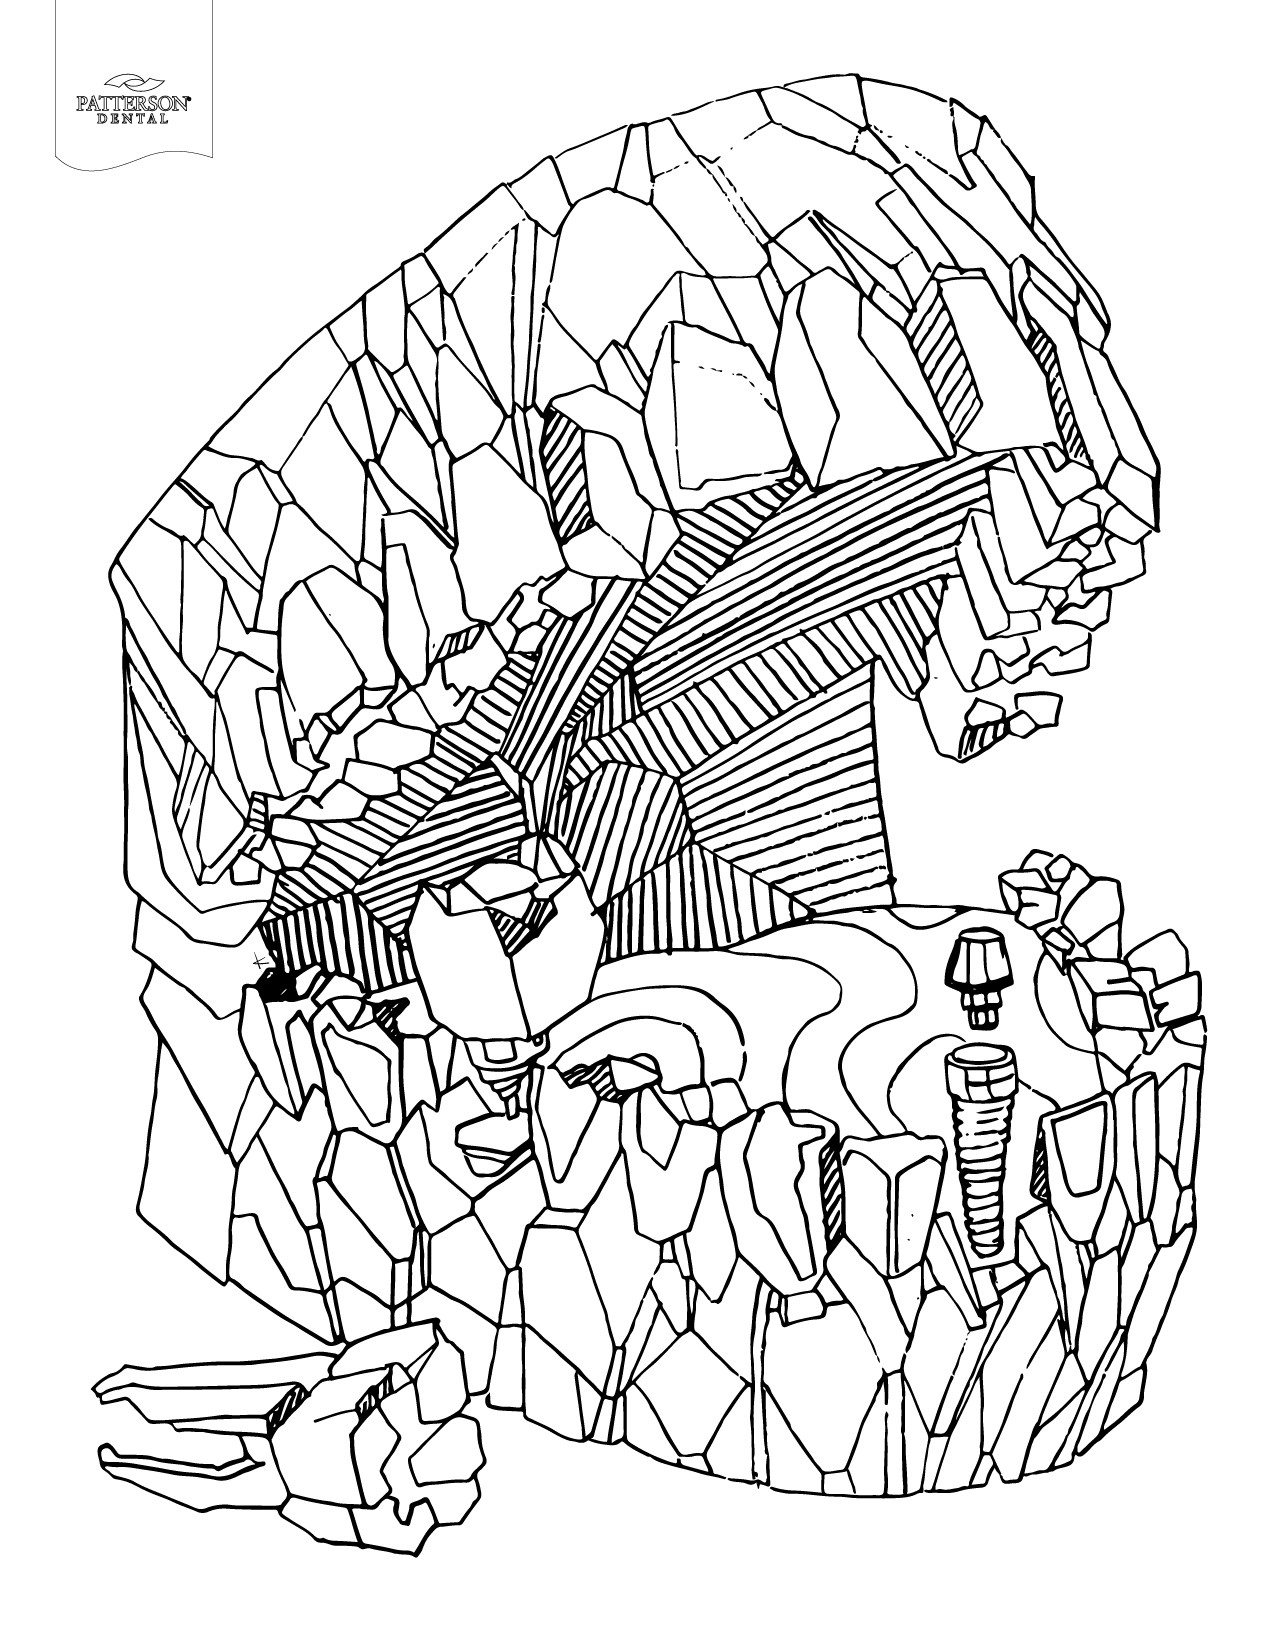 Adult Coloring Pages To Print Impressive Coloring Pages To Print Off Coloring In Humorous Medquit